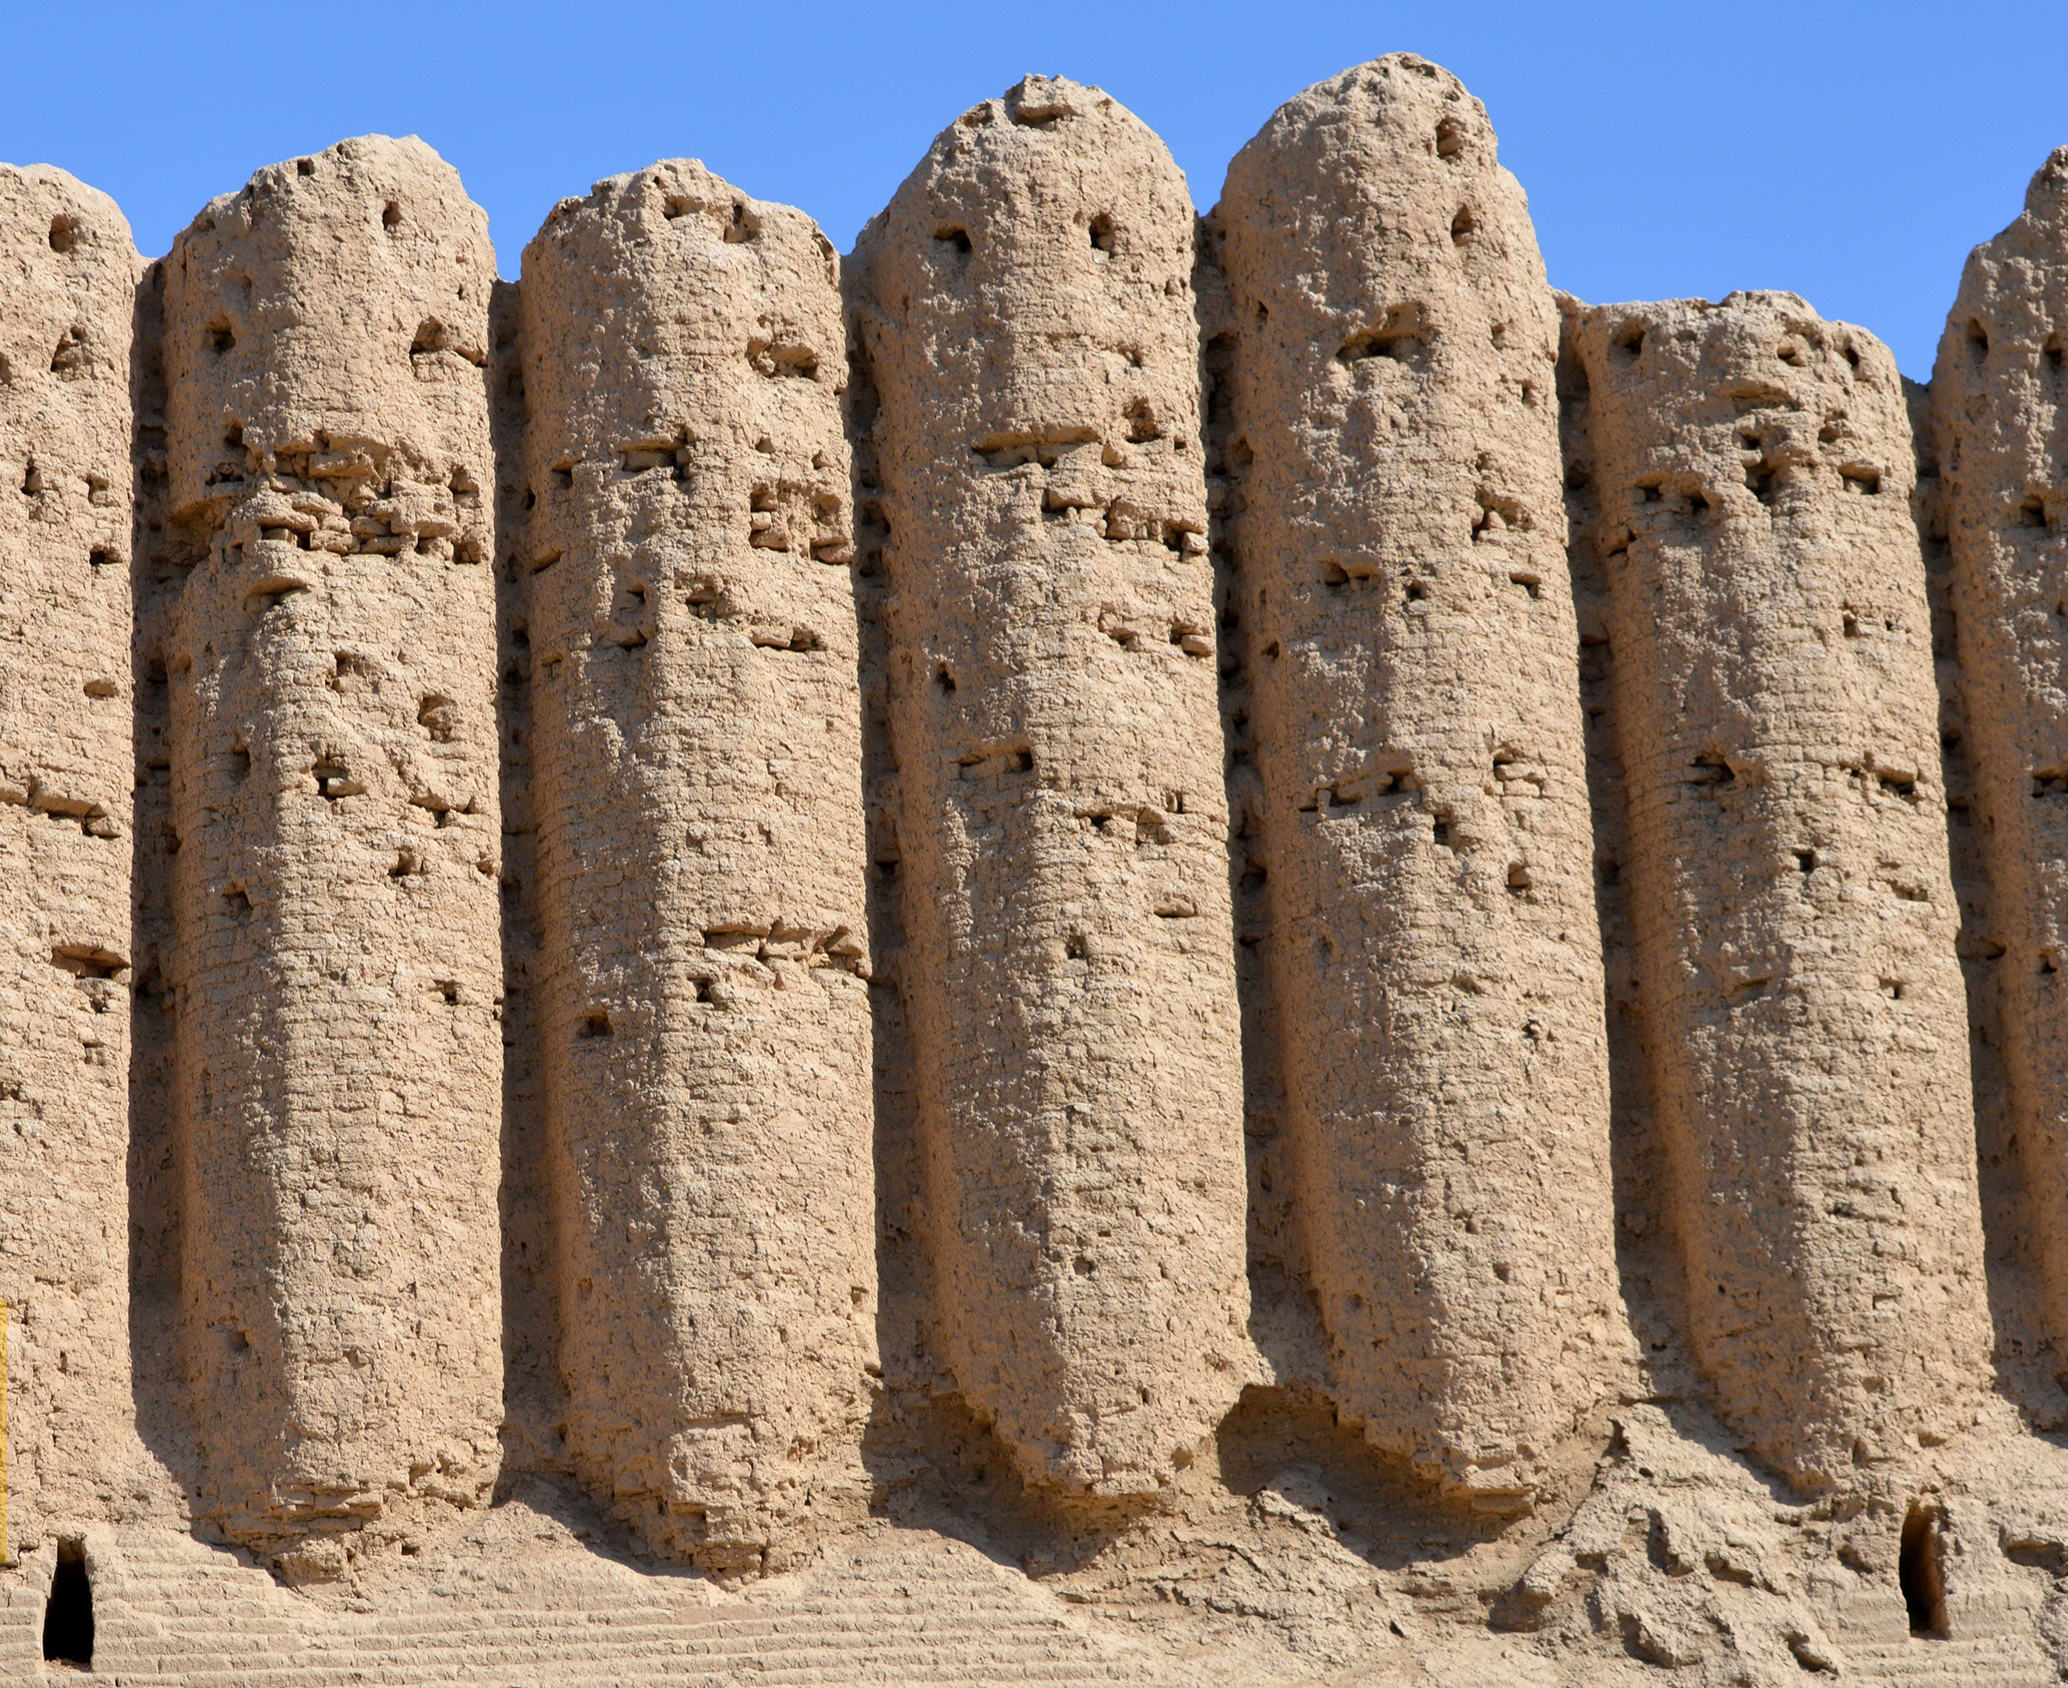 Mud brick fortifcation walls from the 10th century at Merv, Turkmenistan SOURCE: Manu Sobti